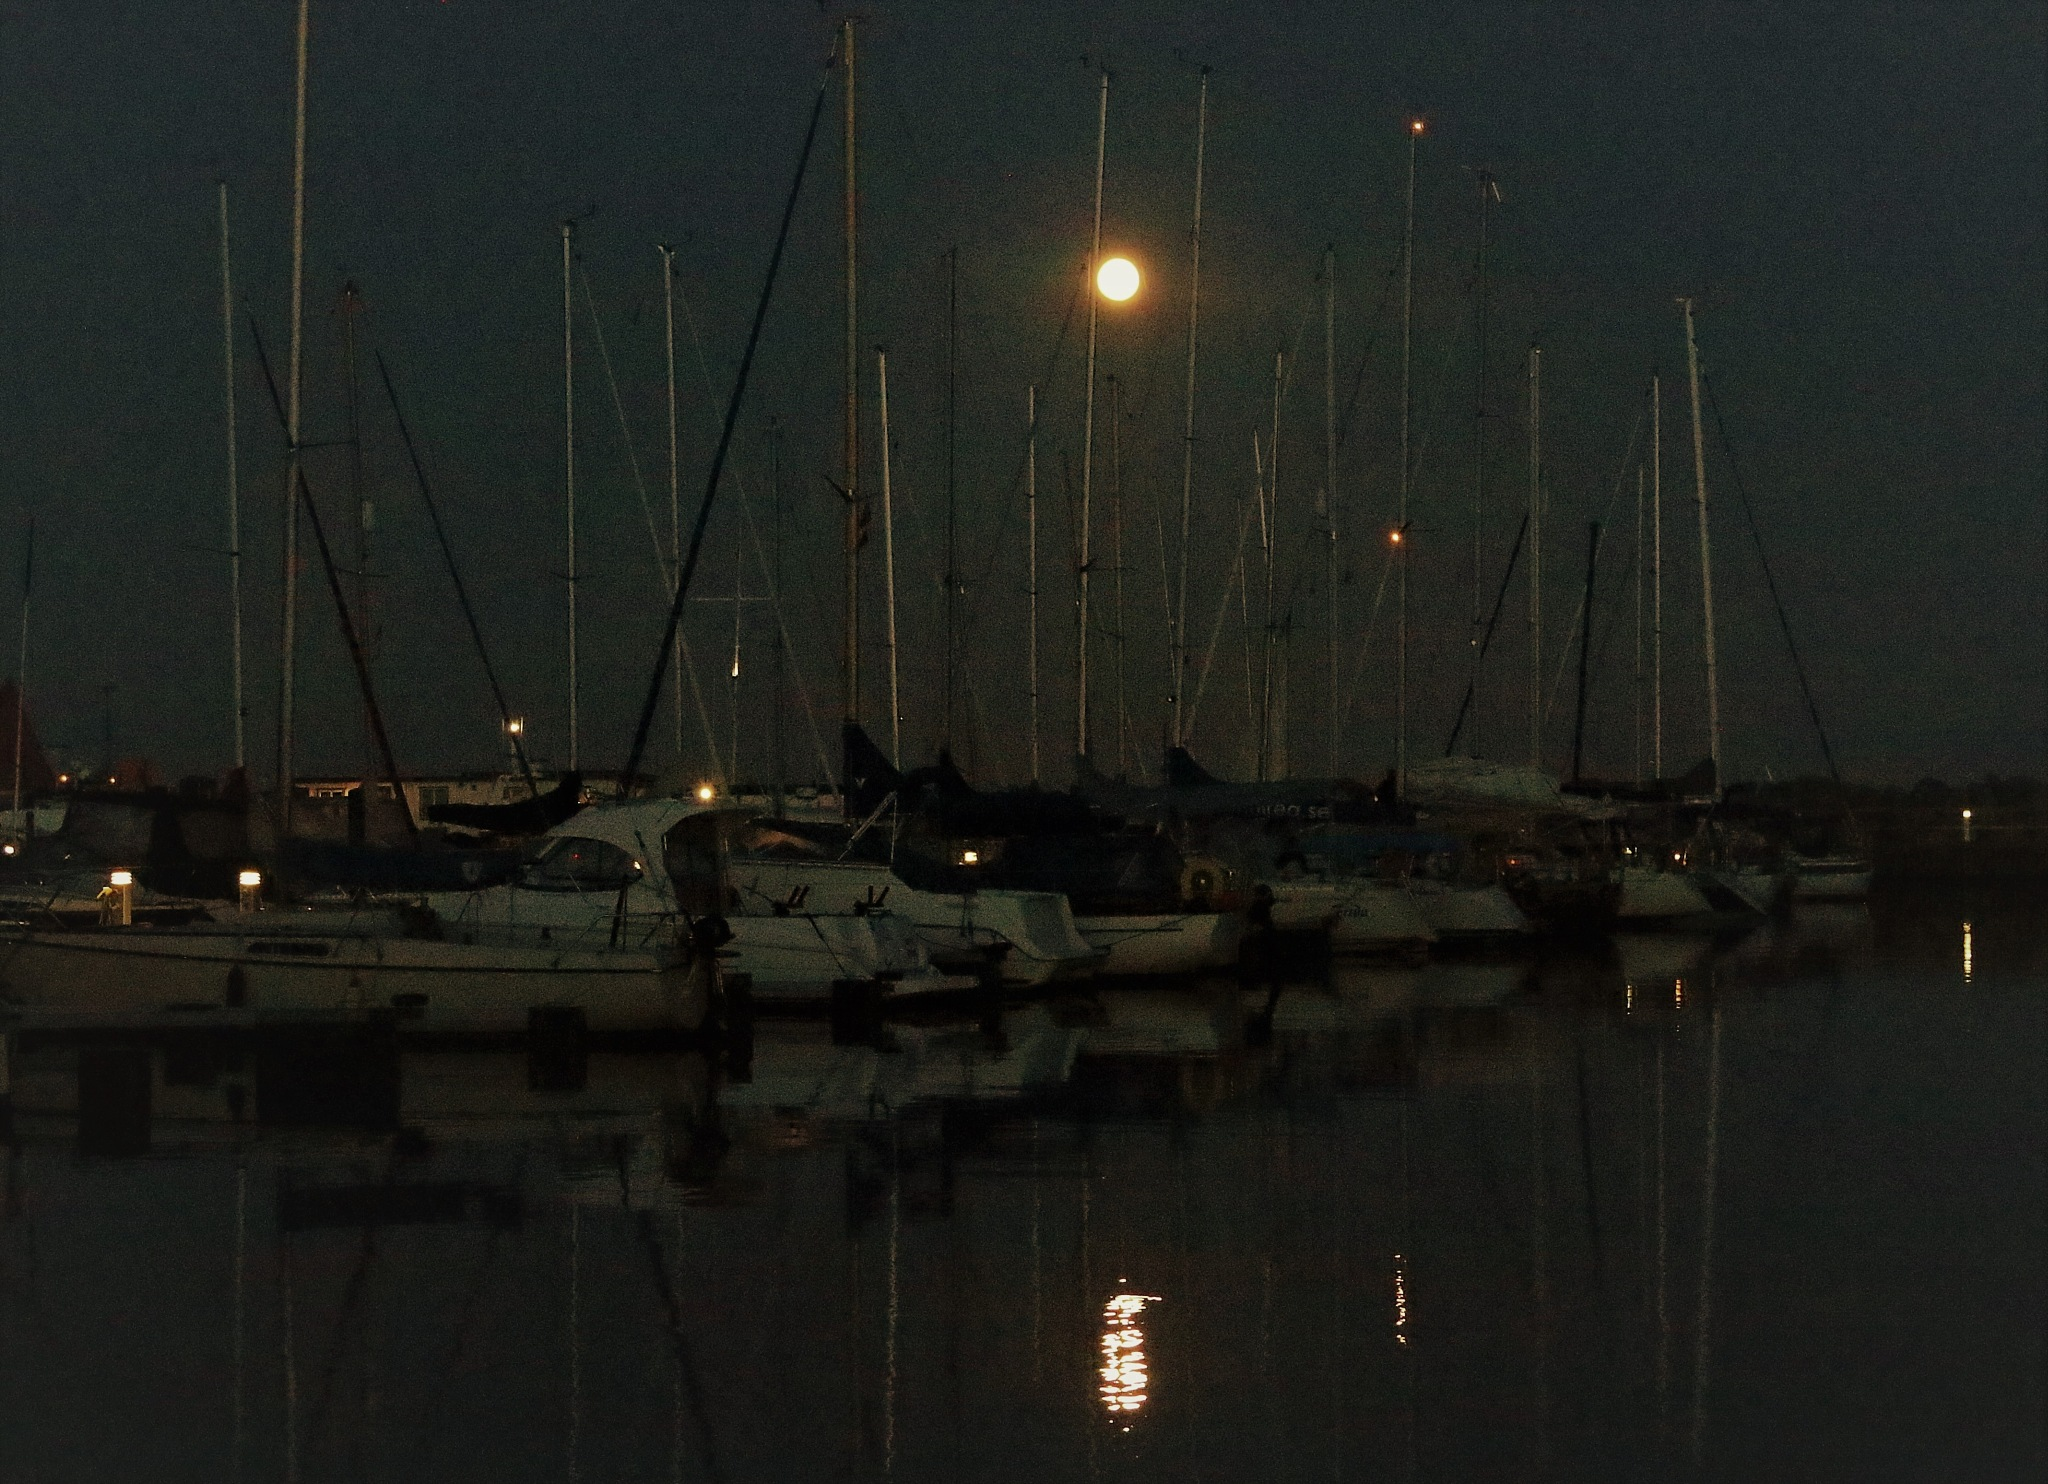 Full Moon over the Marina in My Hometown Ystad. by KerstinP.